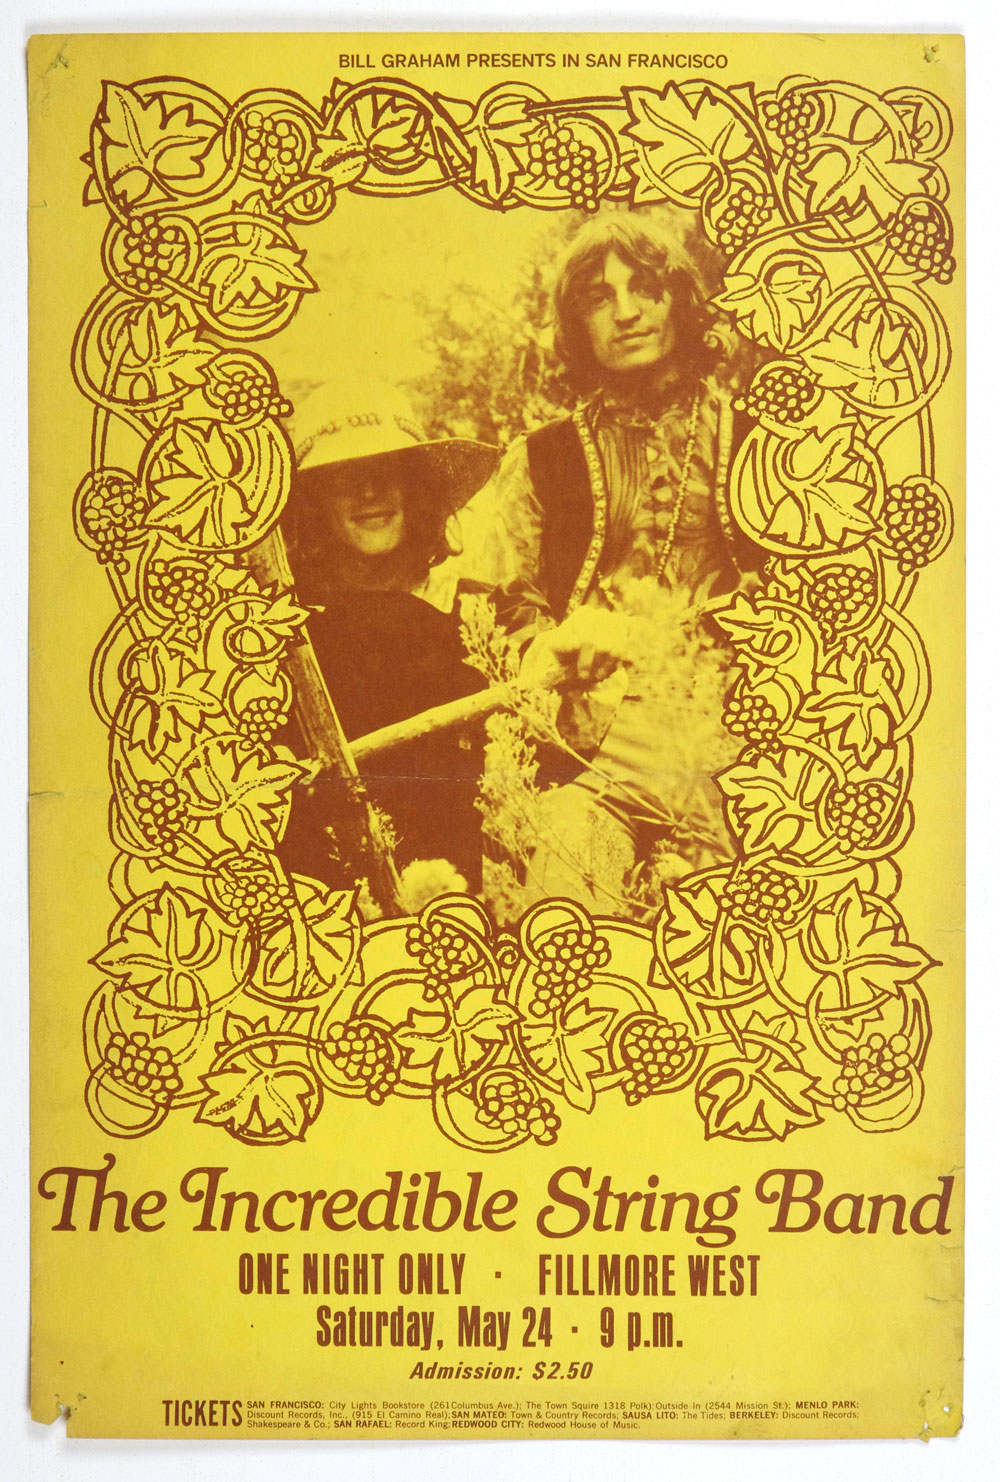 BIll Graham Presents Poster 1969 May 24 The Incredible String Band Fillmore West SF